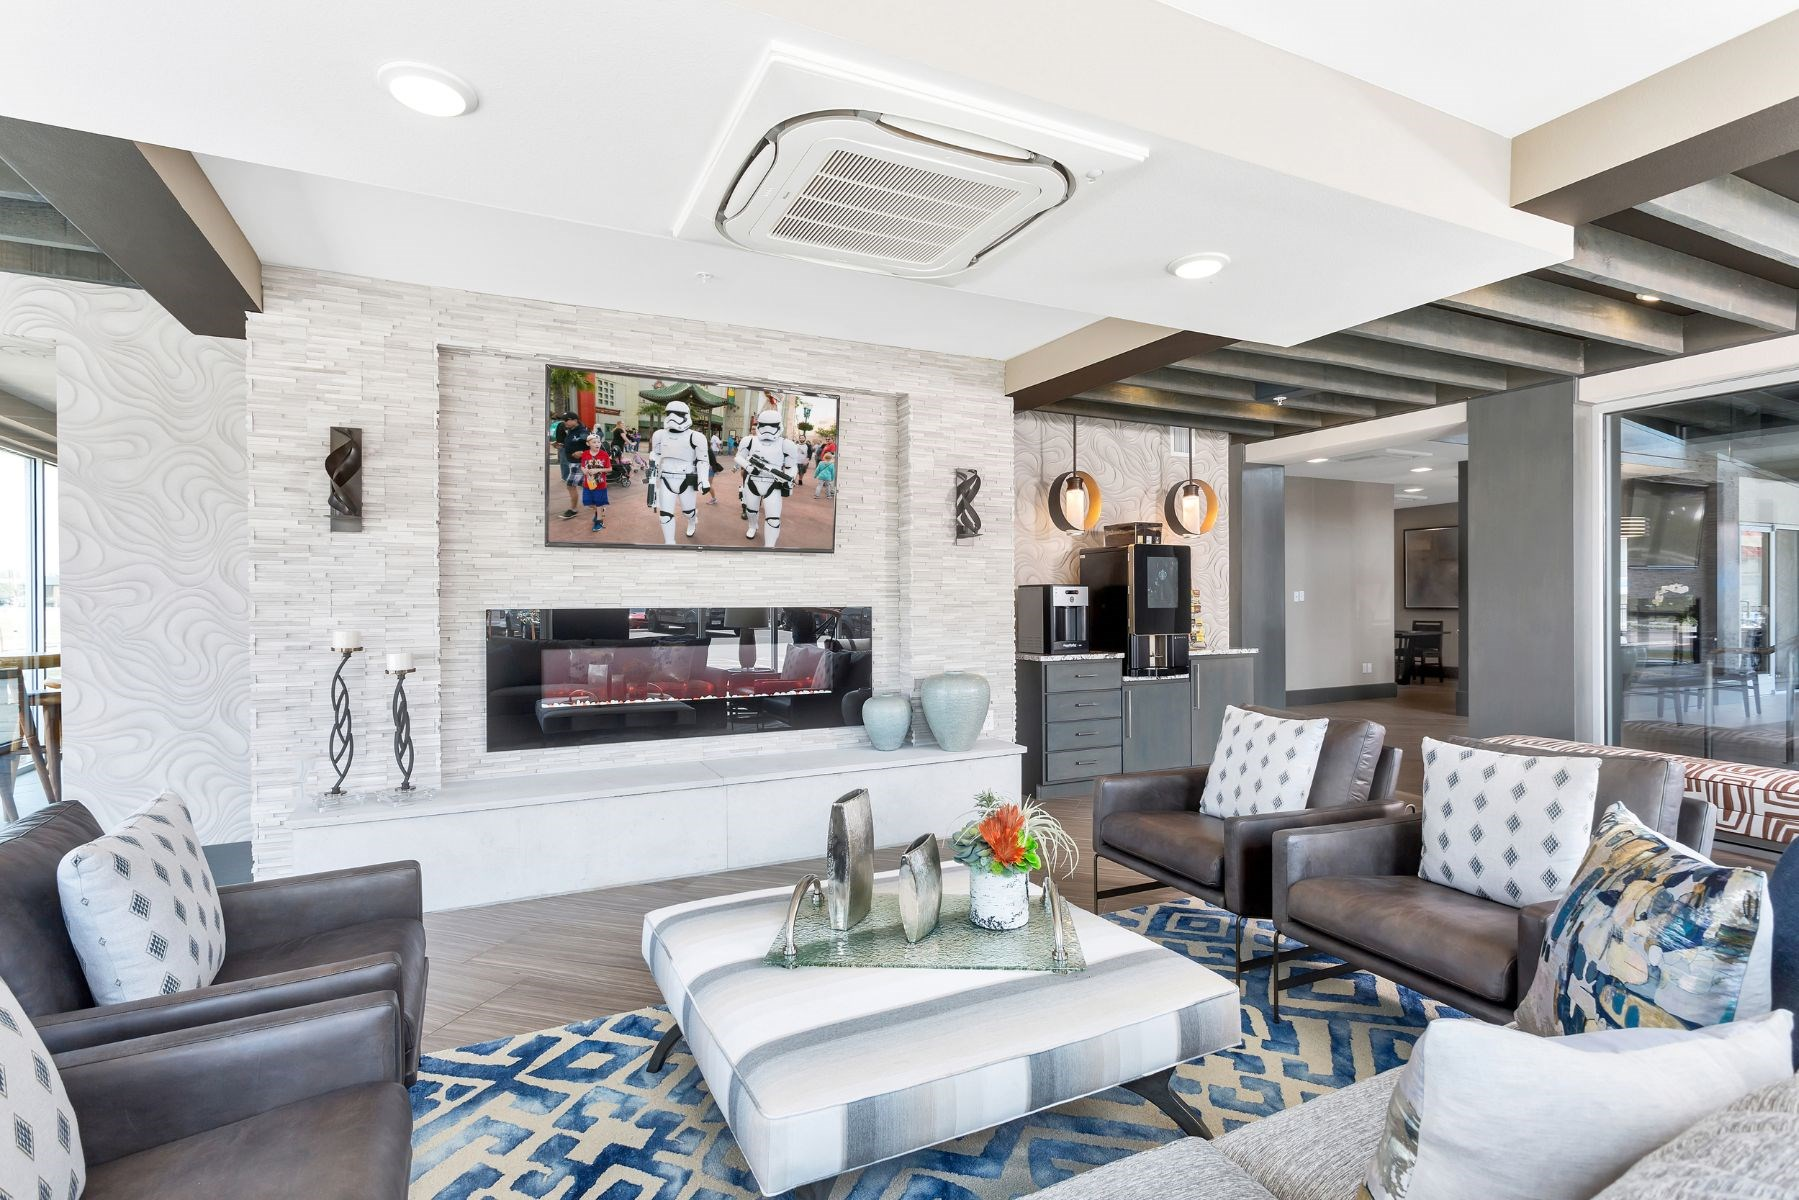 Westwood Green Apartments Clubhouse Lounge with couches, fireplace and tv